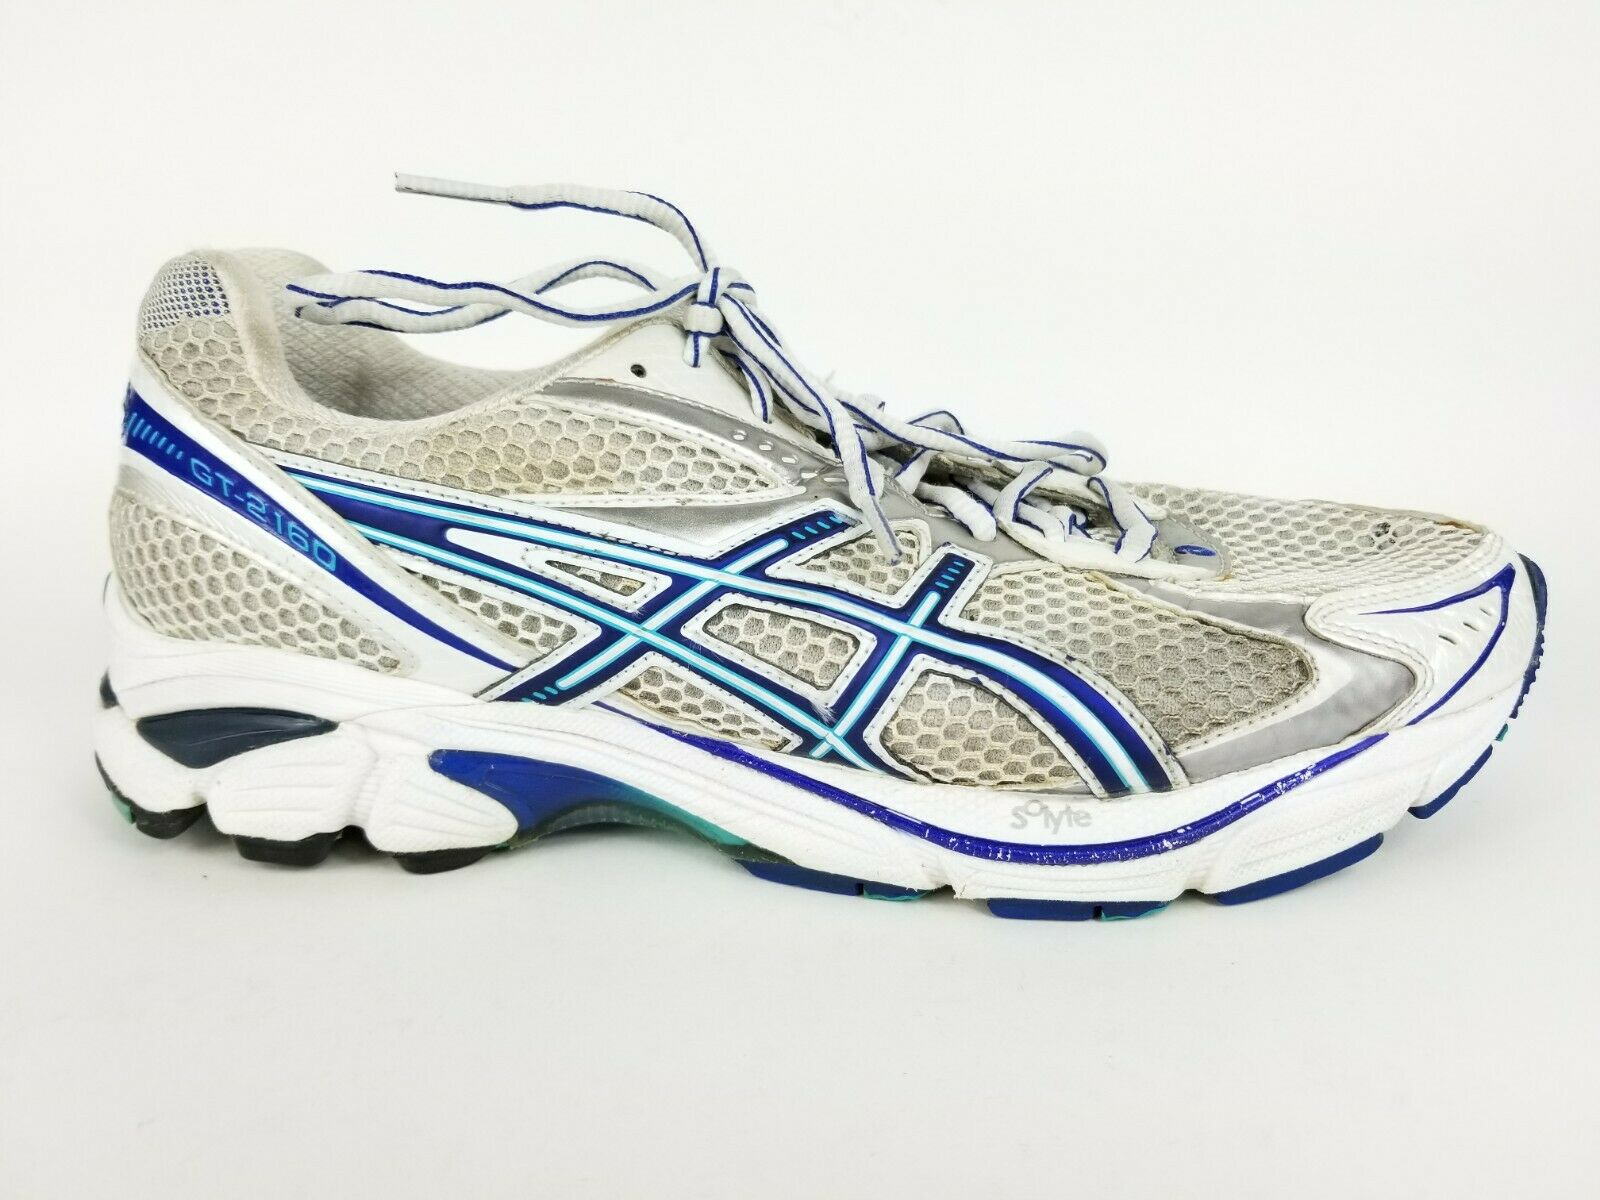 Asics Gt 2160 Road Running Athletic shoes Sneakers Lace Up Women's Size 10 (2E)